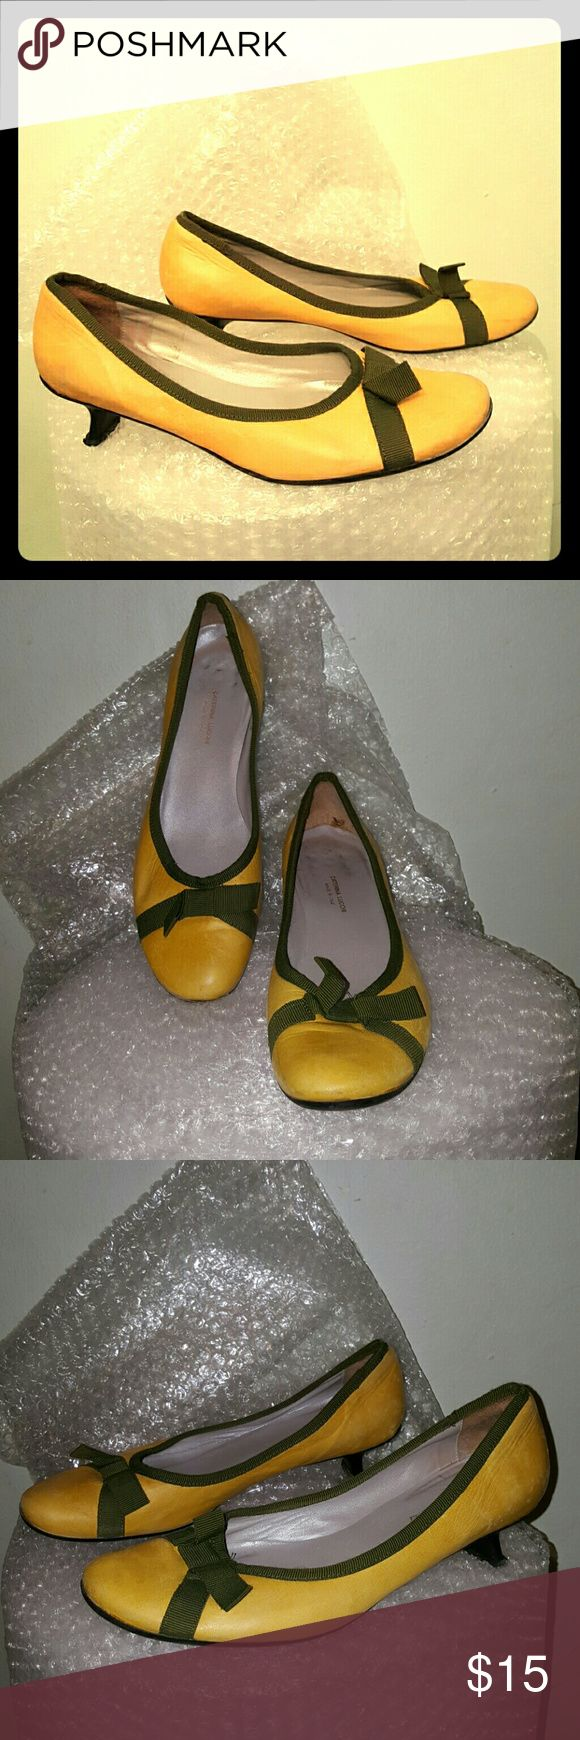 """Caterina Lucci kitten heel grosgrain shoes 37 Yellow leather upper with a bow tie detail at the vamp. 1 3/4"""" kitten heel. Round toe, padded footbed. Made in Italy. Some light scuffing to the leather upper. Caterina Lucchi Shoes Heels"""